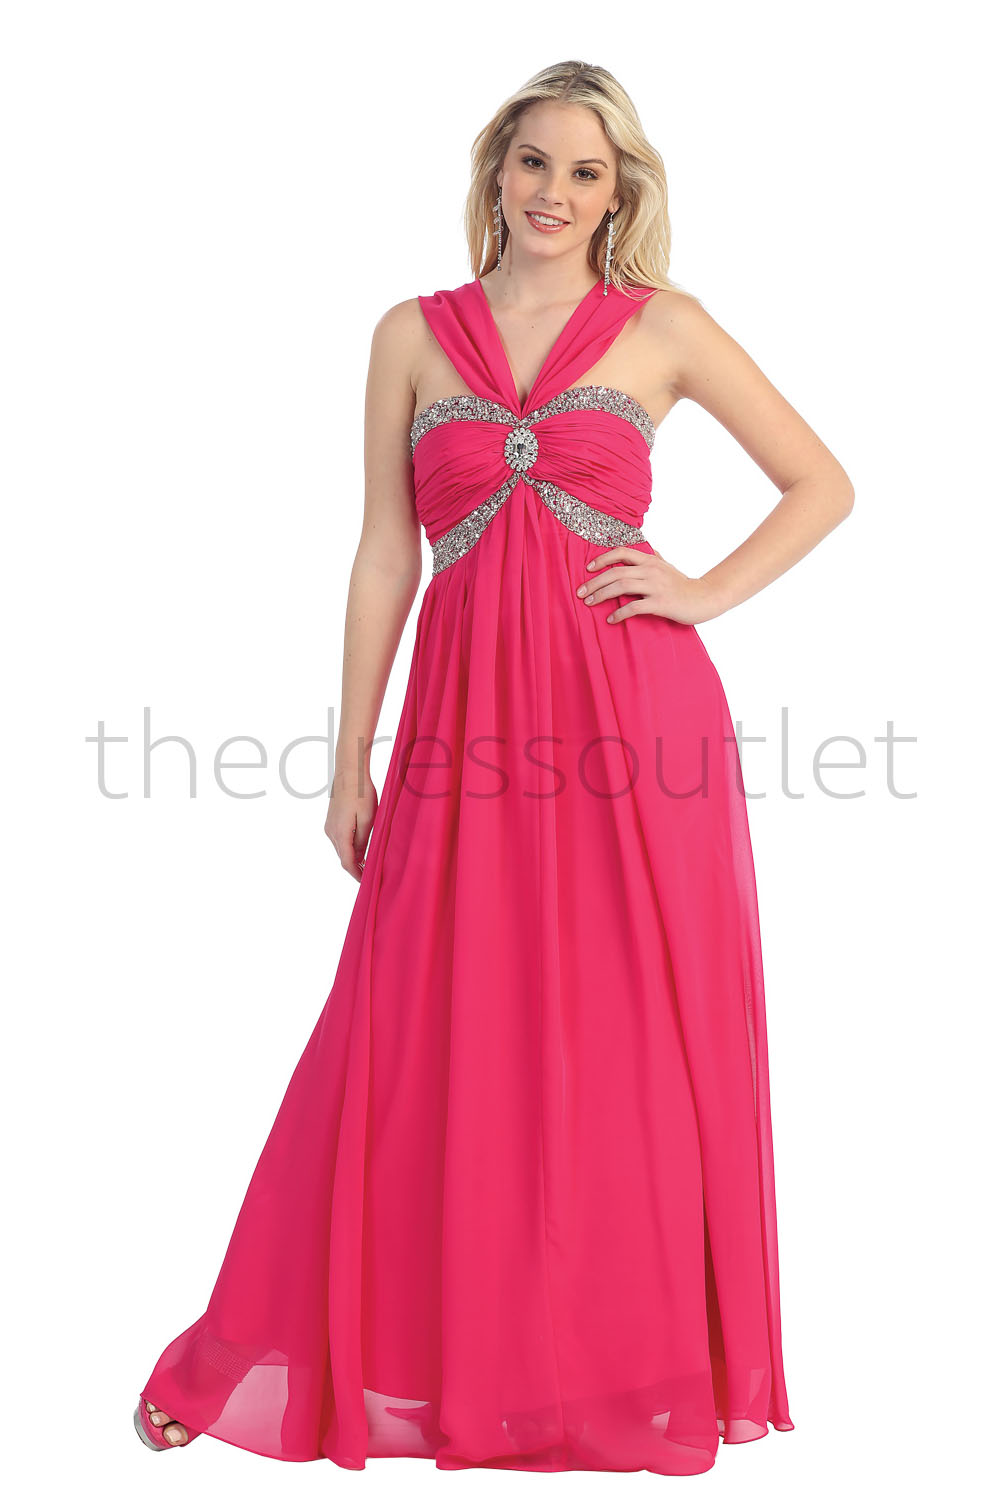 Halter top formal long dress wedding guest bridesmaids for Ebay wedding guest dresses